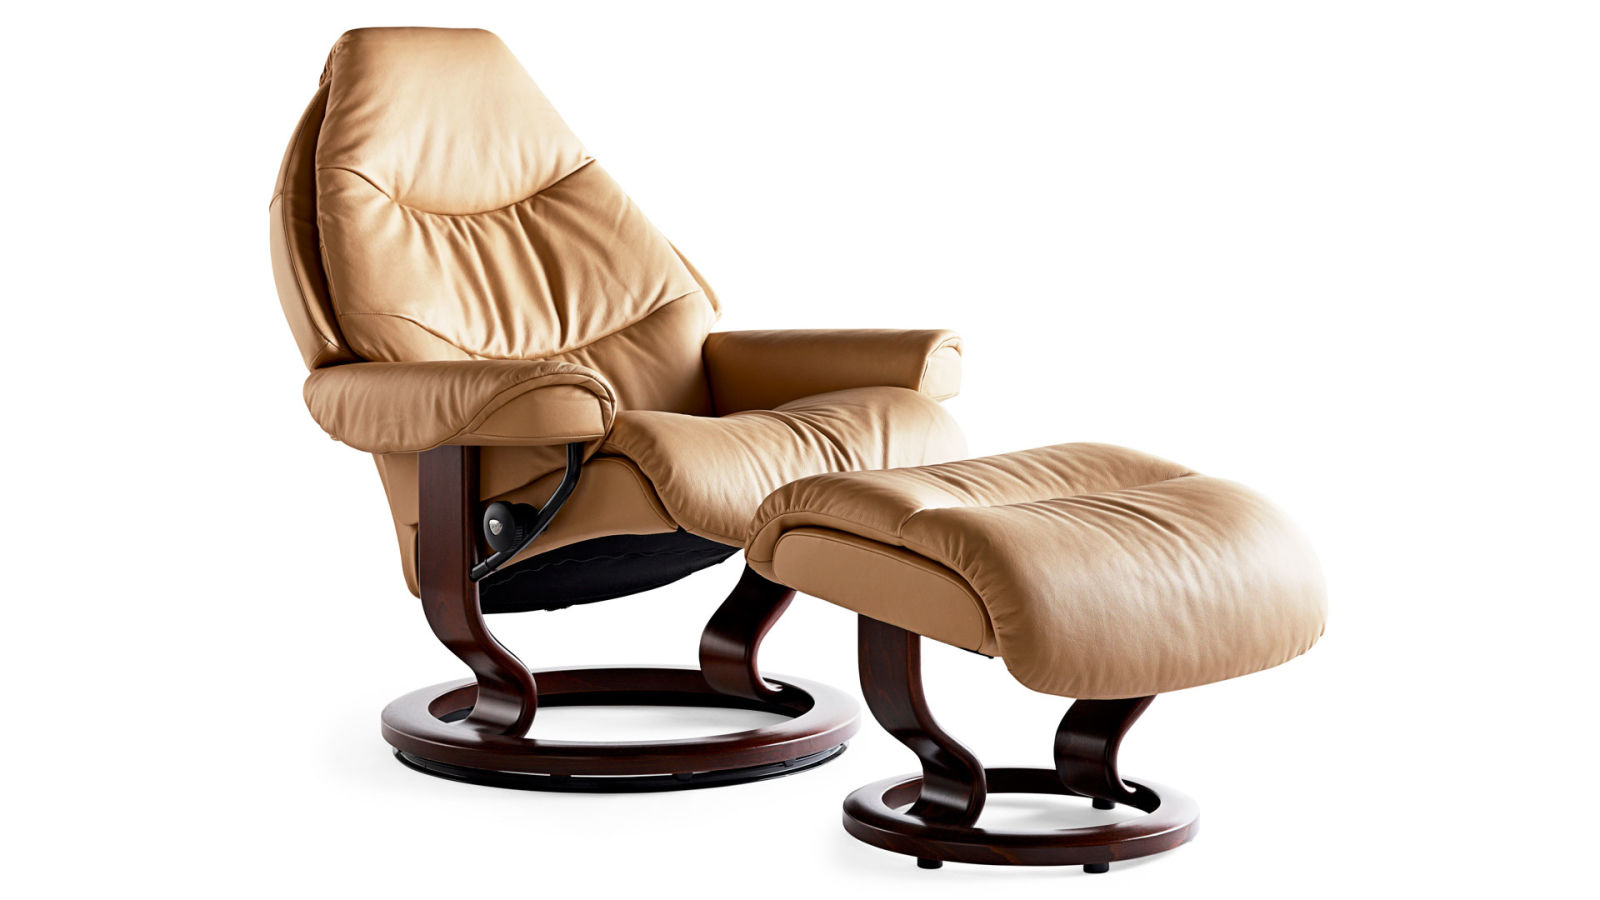 Ergonomic Living Room Chair Ergonomic Home Furniture Ergonomic Design Ideas